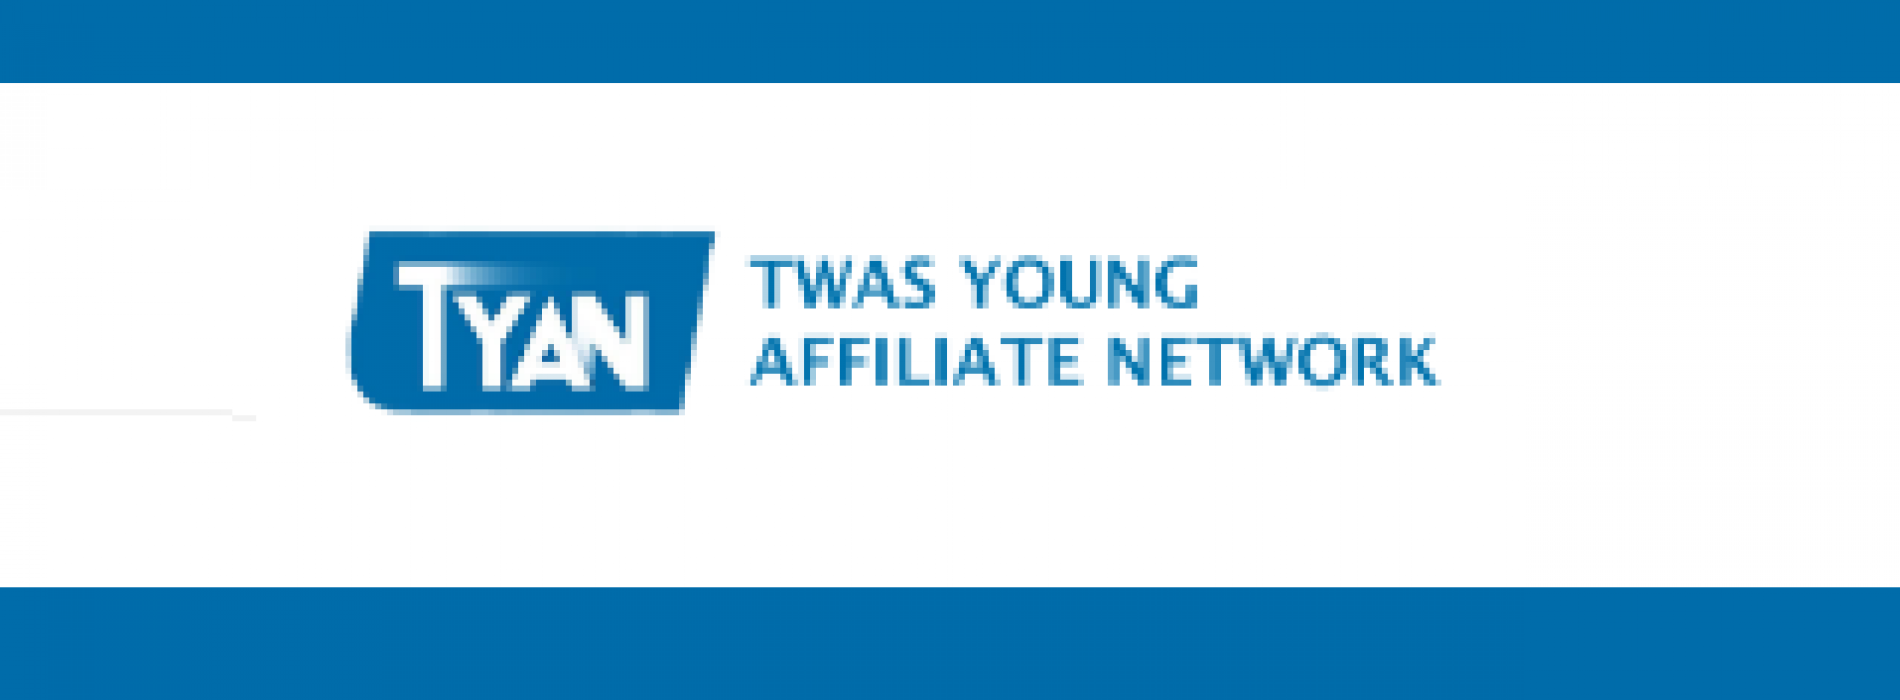 The first international conference of the TWAS Young Affiliate Network (TYAN) 22-24 August, 2017, Rio de Janeiro, Brazil